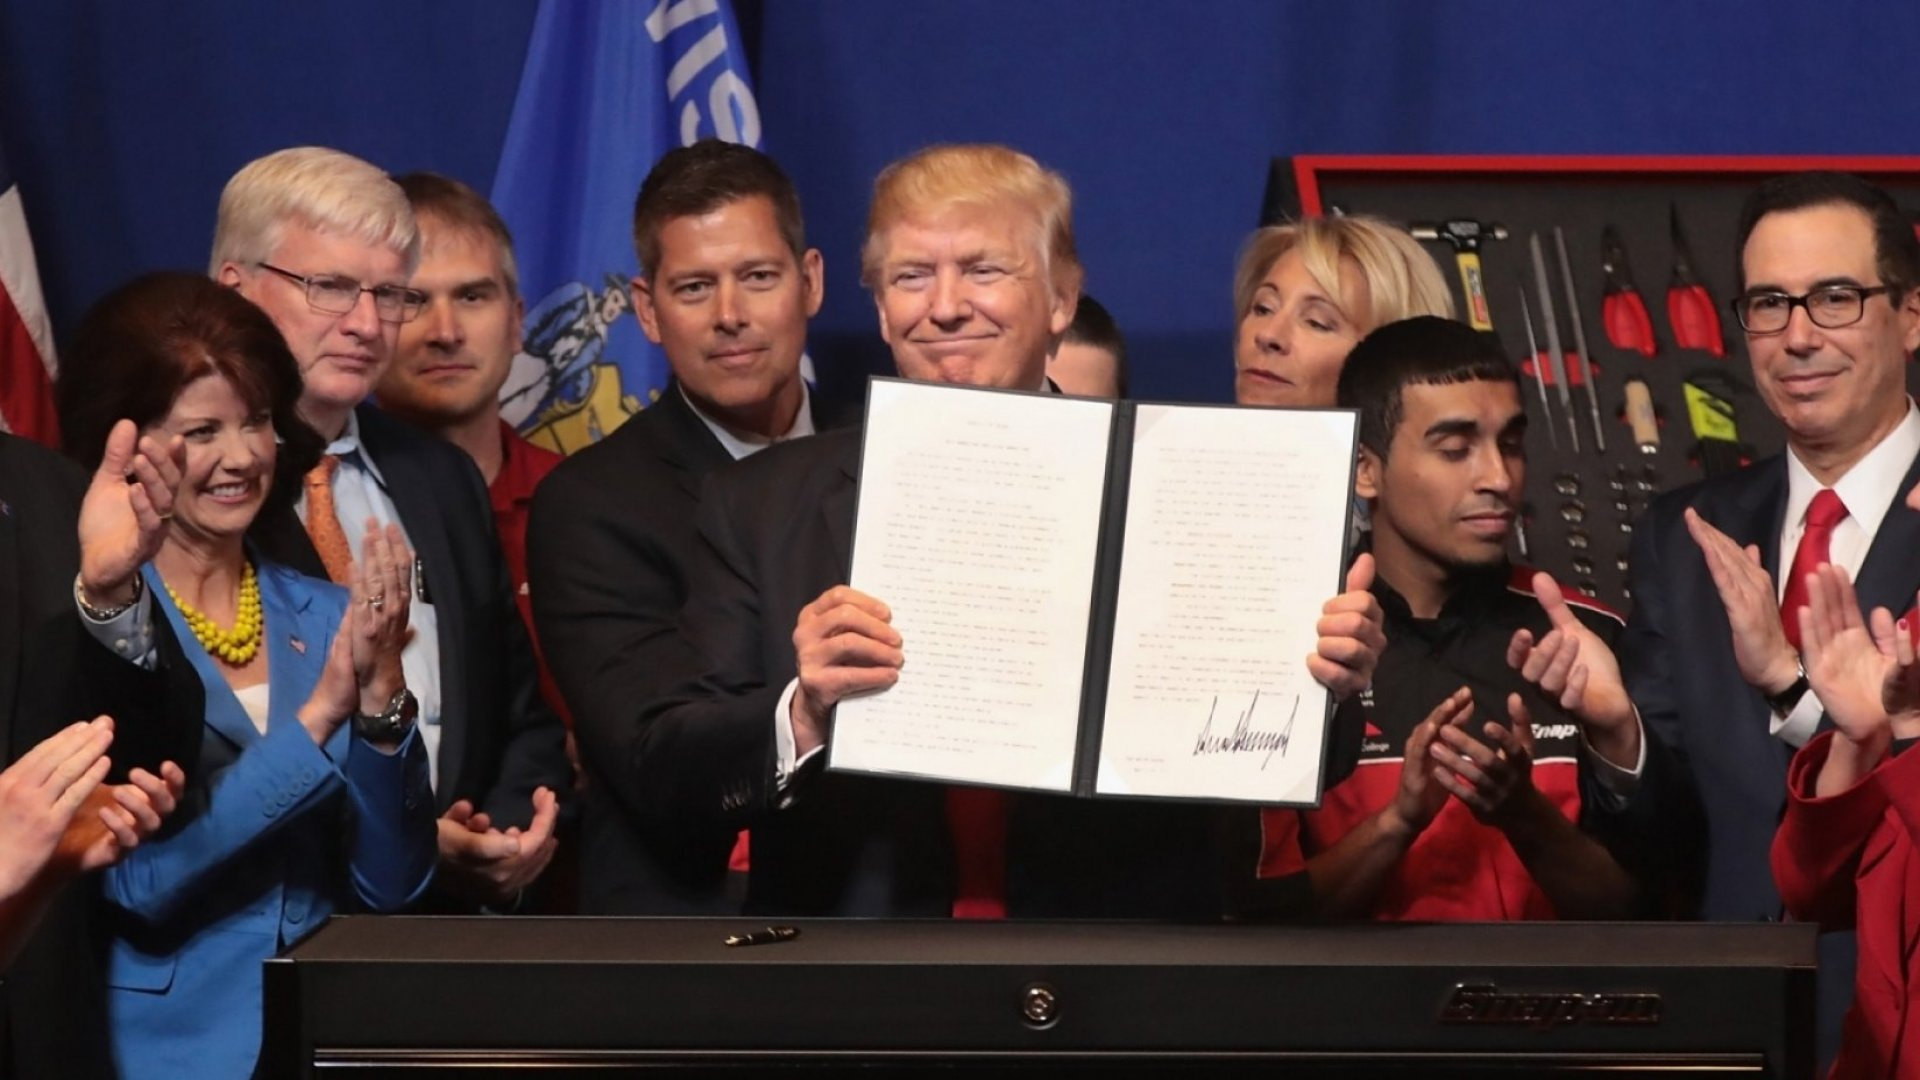 President Donald Trump signs an executive order to try to bring jobs back to American workers and revamp the H-1B visa guest worker program during a visit to the headquarters of tool manufacturer Snap-On on April 18, 2017 in Kenosha, Wisconsin.